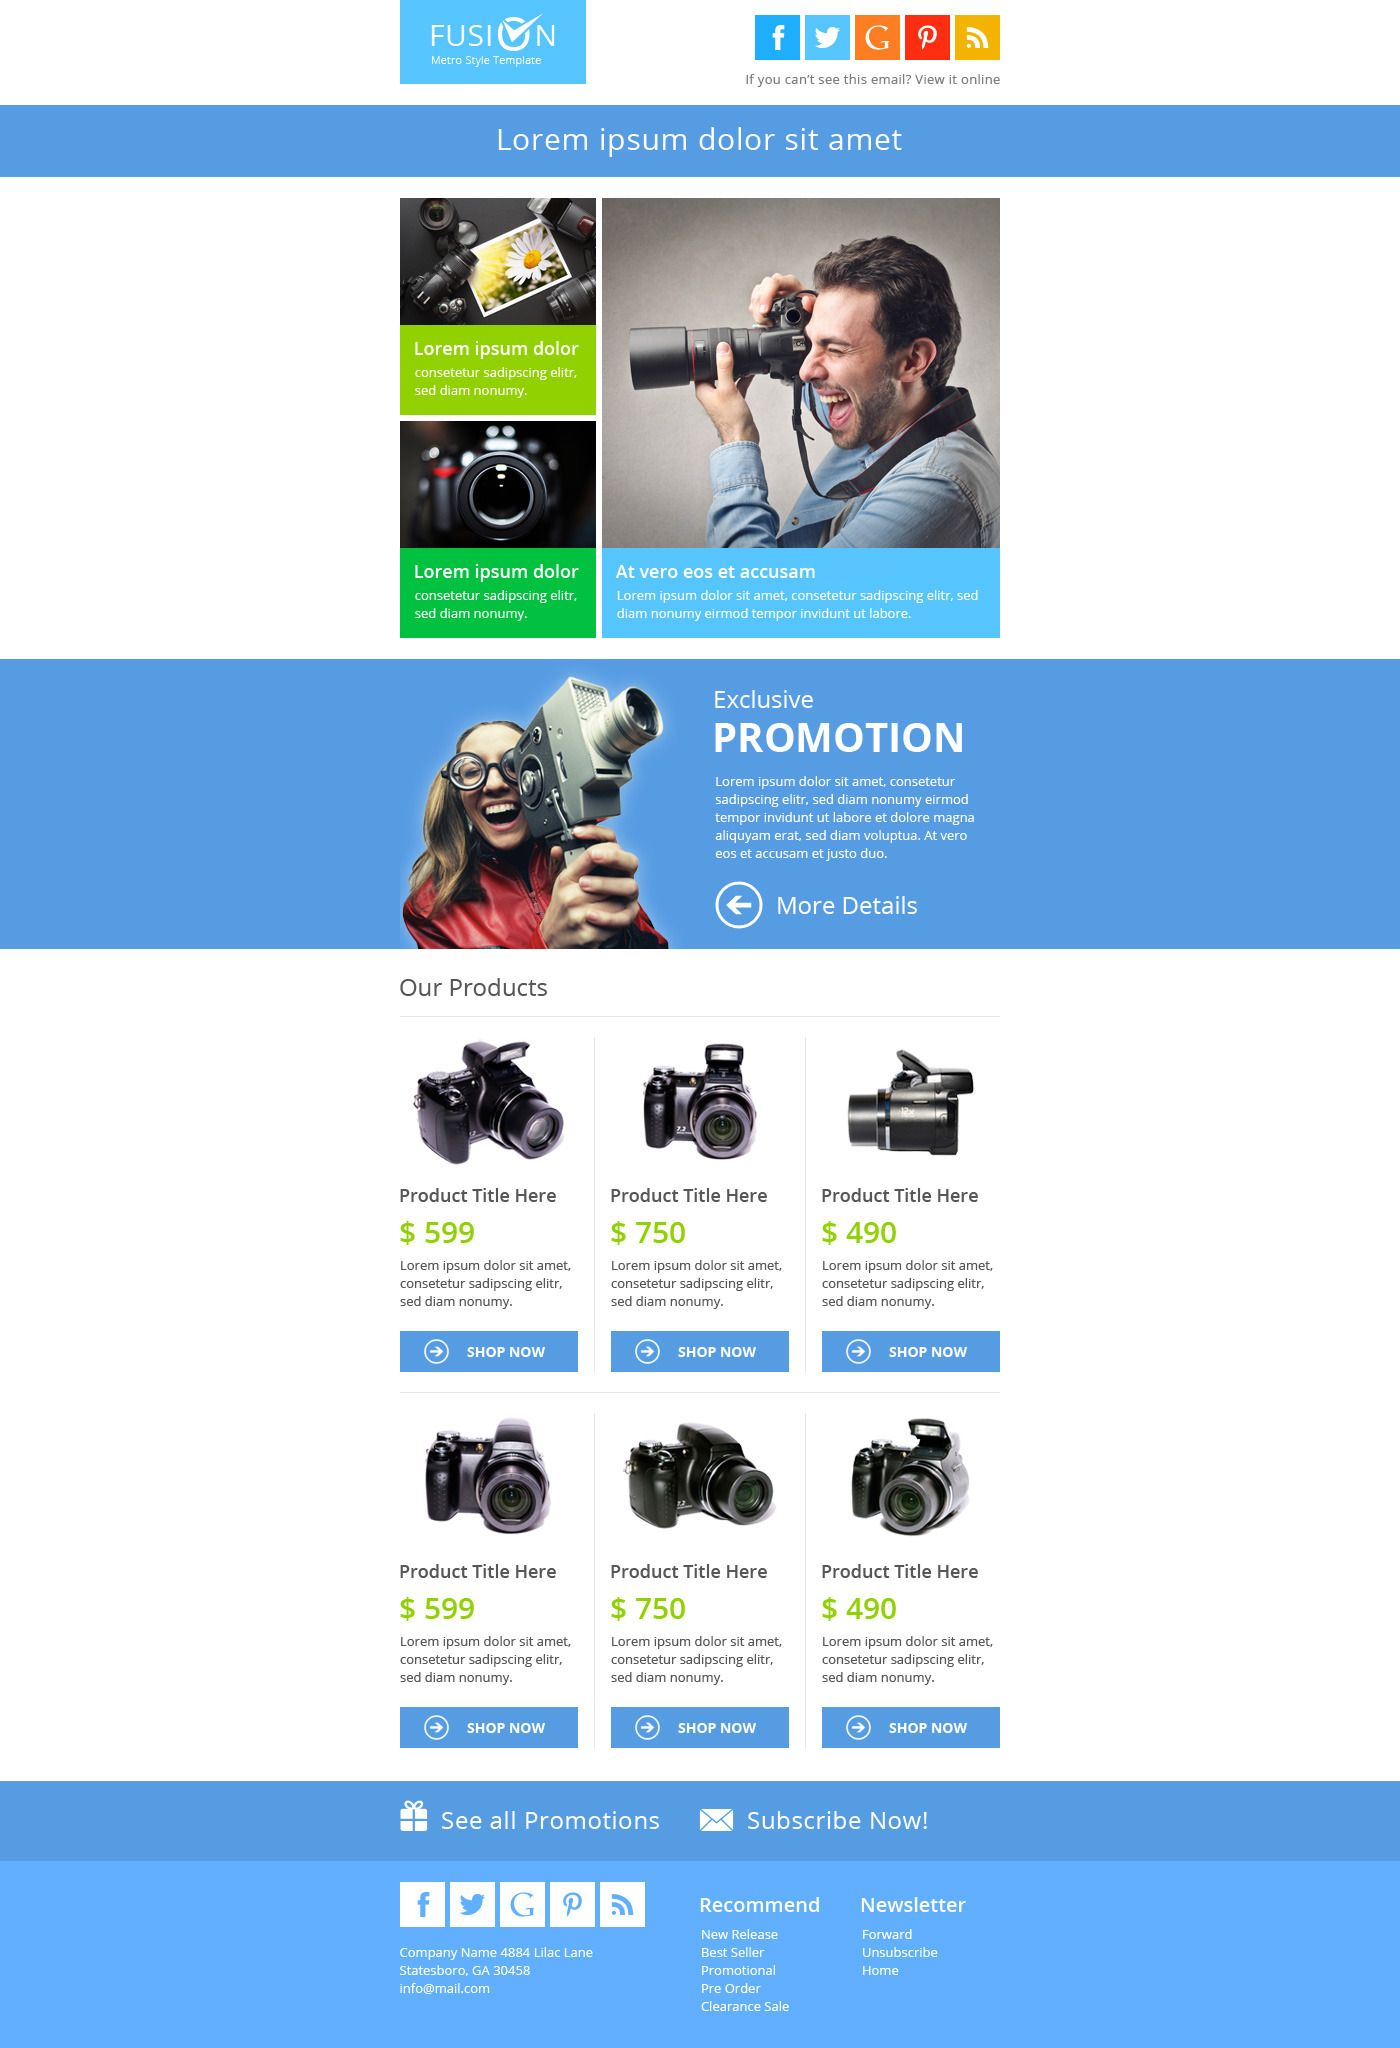 Fusion metro email newsletter template #metro, #fusion, #email.